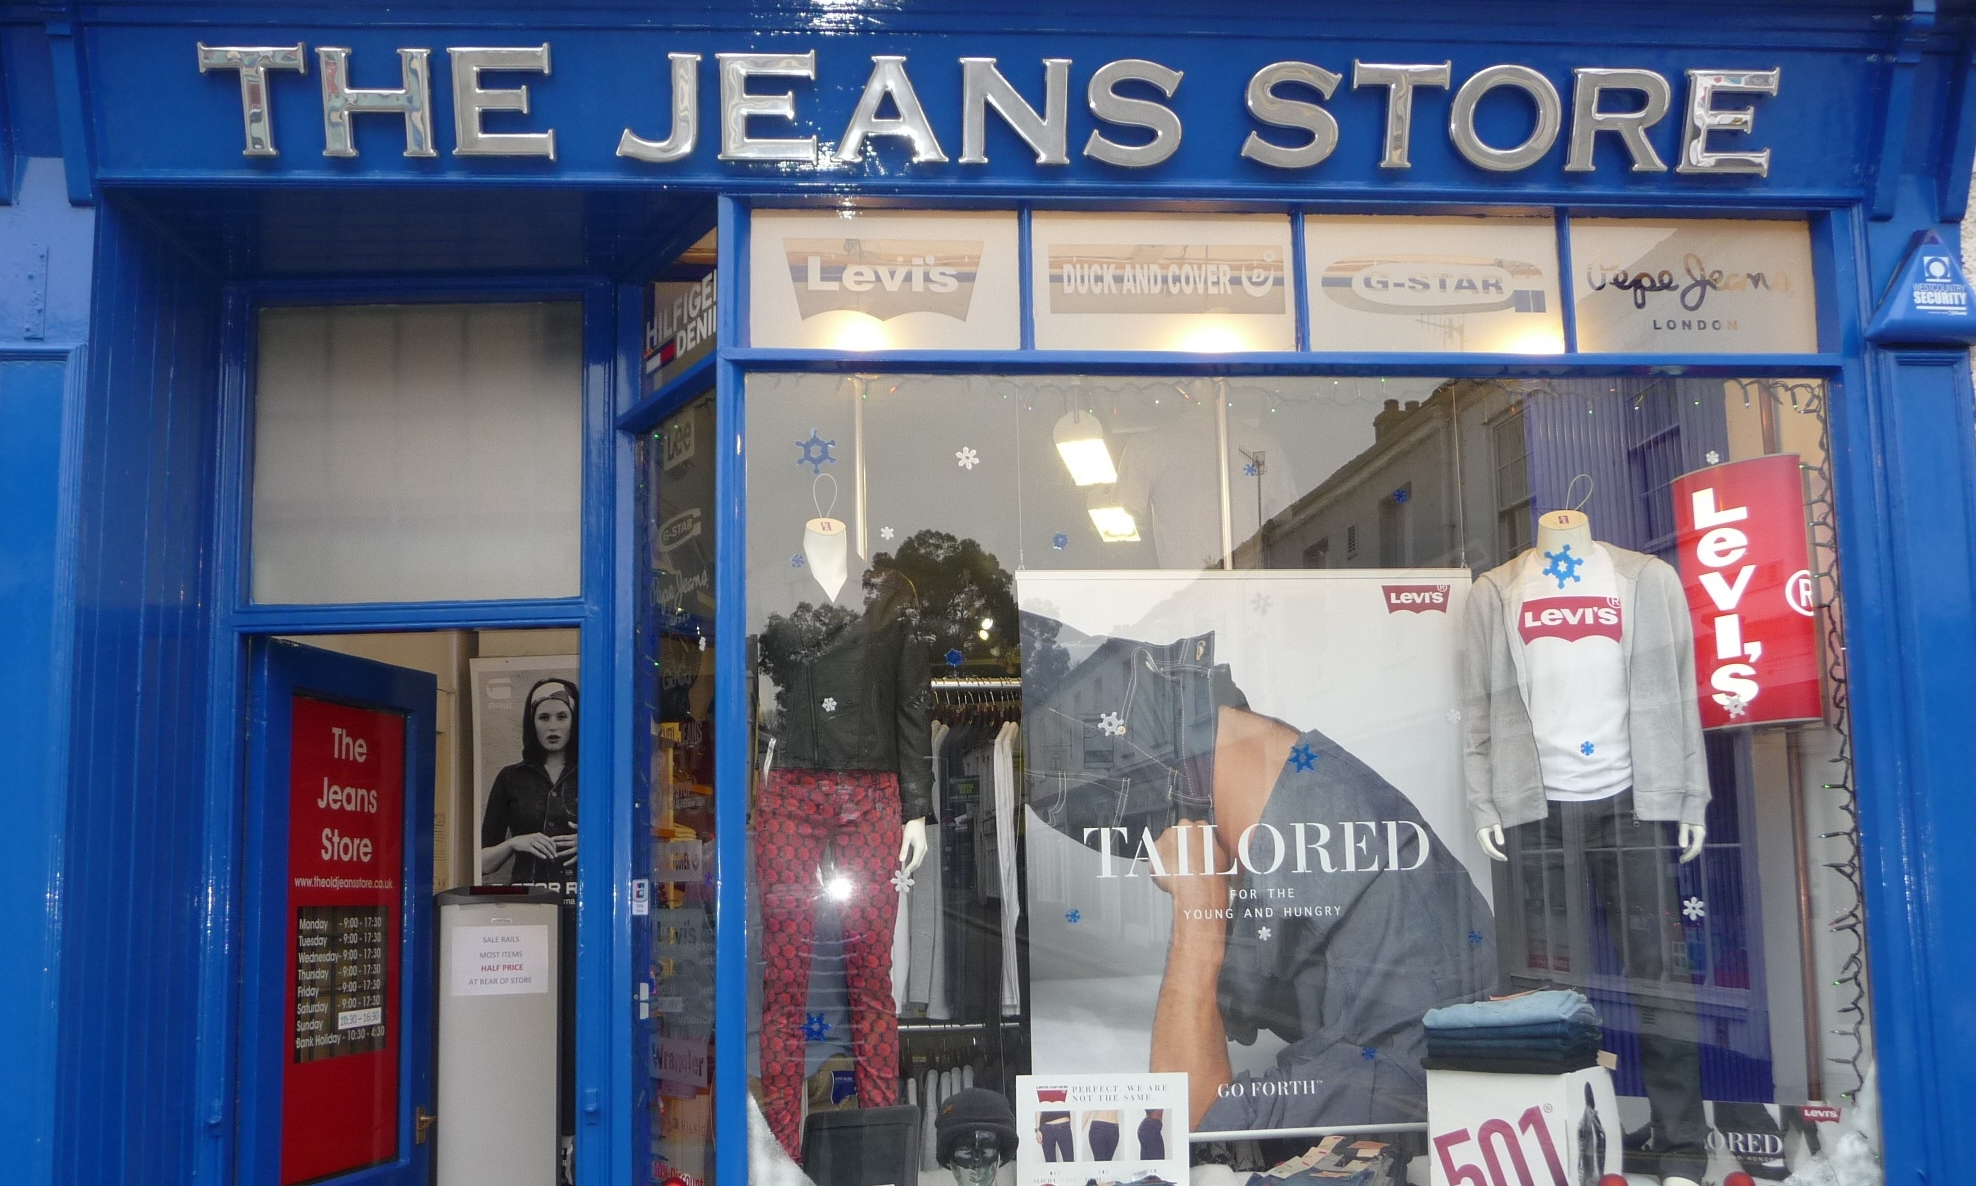 THE JEANS STORE - Est. 1995 The Jeans Store offers the largest selection of mens & womens jeans in Cornwall. Brands include: Levi's, G-Star, Pepe, Wrangler, Born Rich, Duel, Nudie, Money, Luke, Nicce, Hilfiger, Replay, Byoung, Duck & Cover, Weekend Offender and many more. So visit the store for that perfect fitting jean.01872 261961